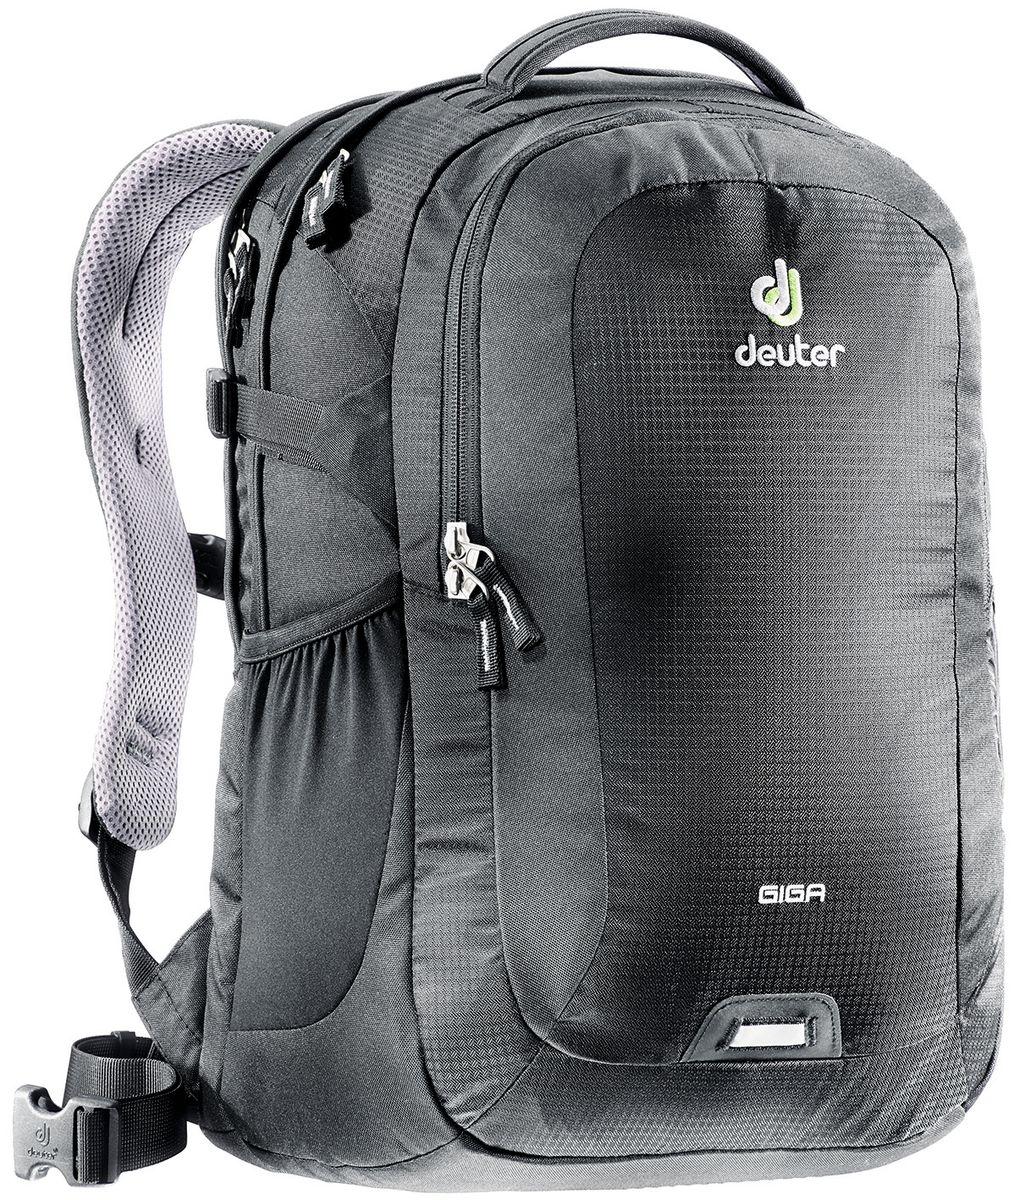 Рюкзак Deuter Daypacks Giga, цвет: черный, 28 л рюкзак deuter daypacks giga bike 28l 2015 turquoise midnight